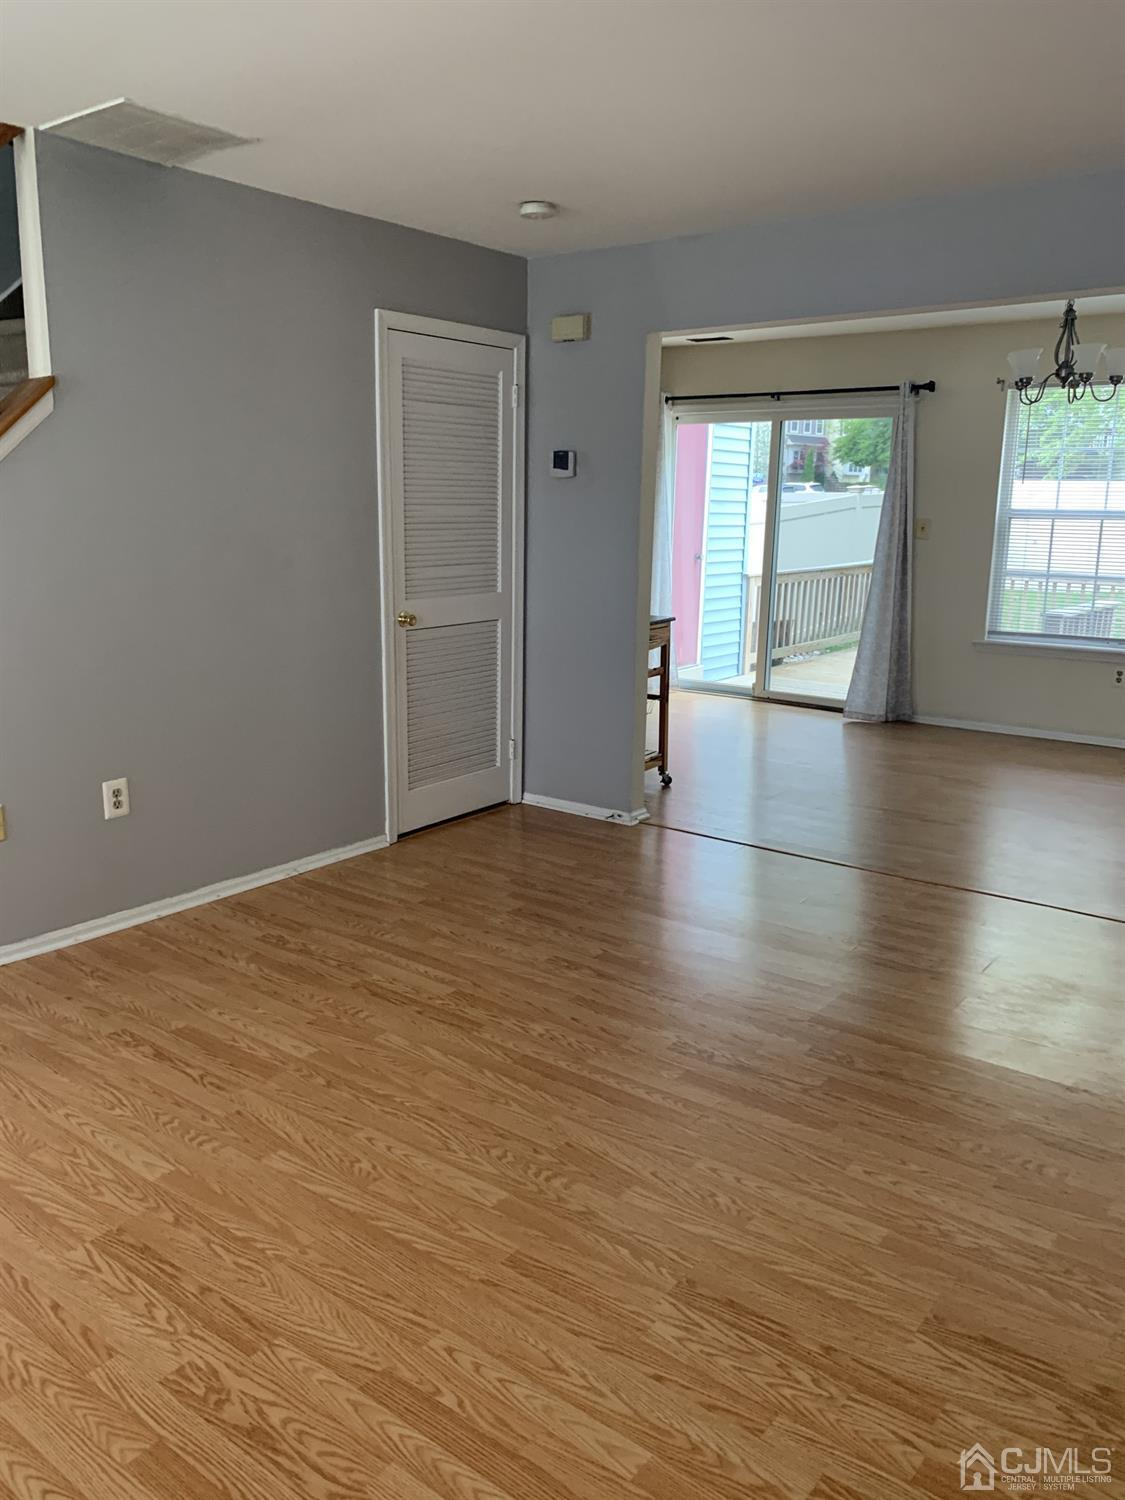 Living room laundry door to dining space from opposite side